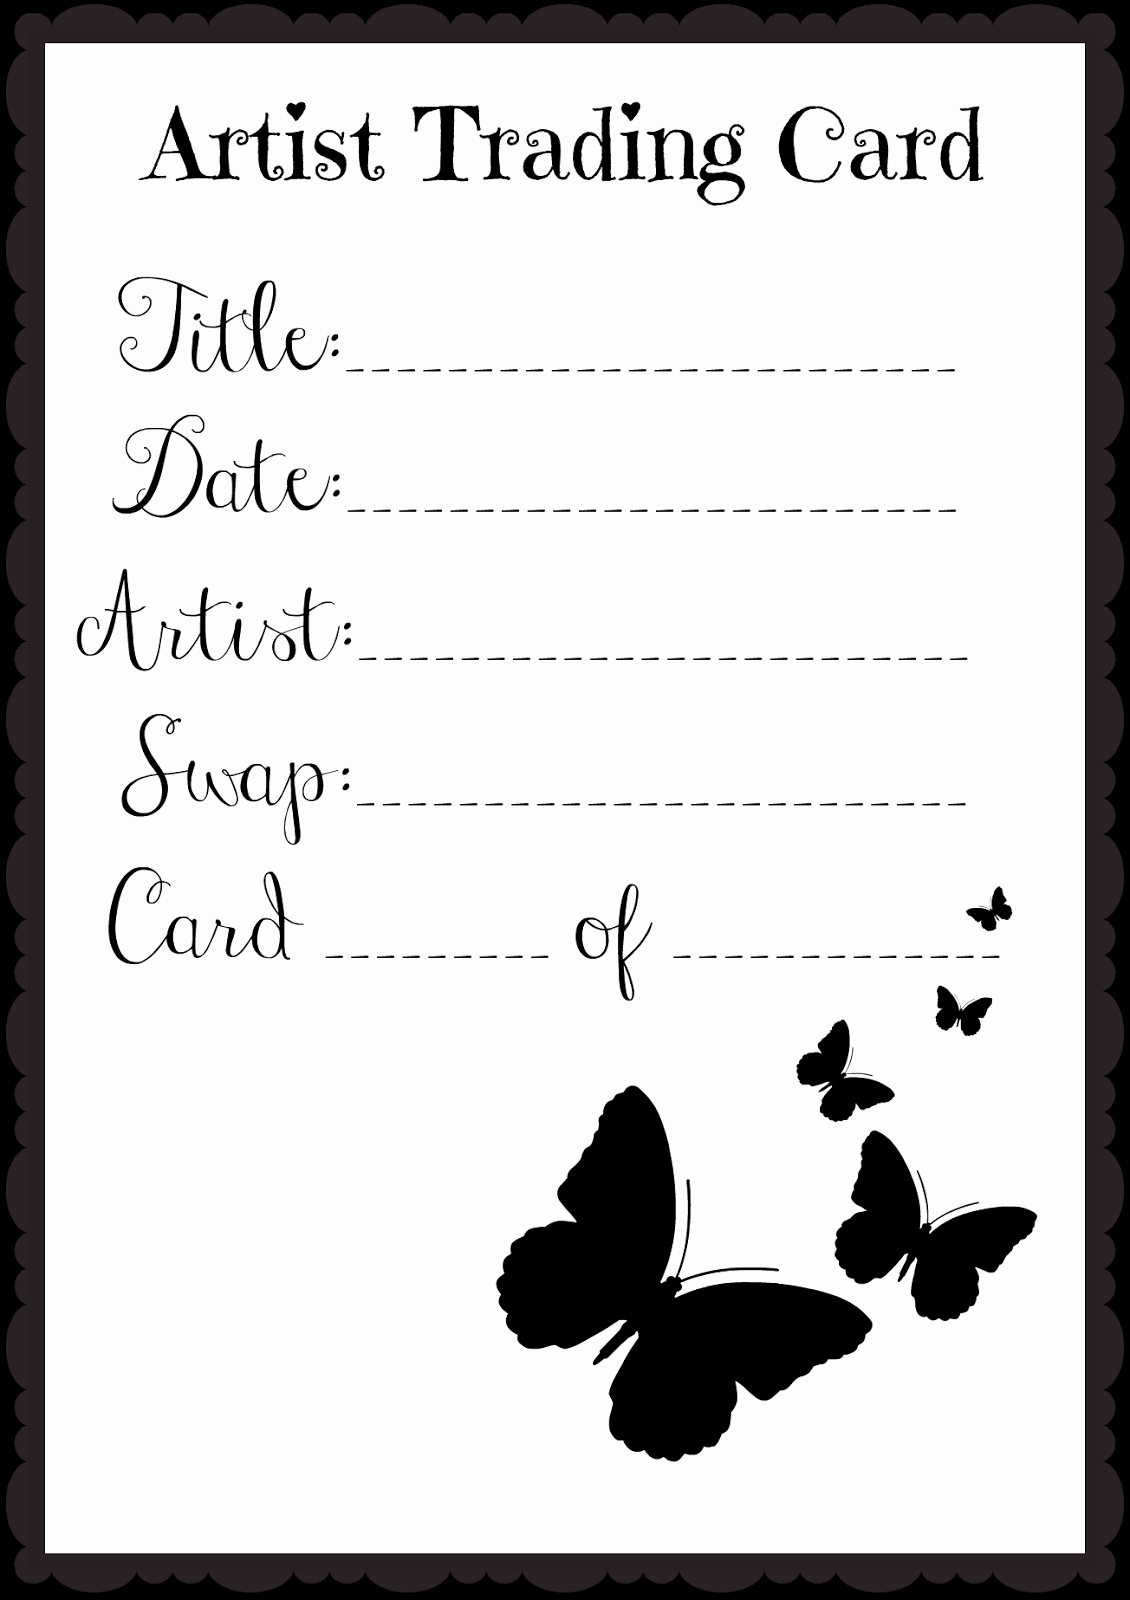 Artist Trading Cards Template Inspirational In This Little Corner Happy Three Kings Day Epiphany